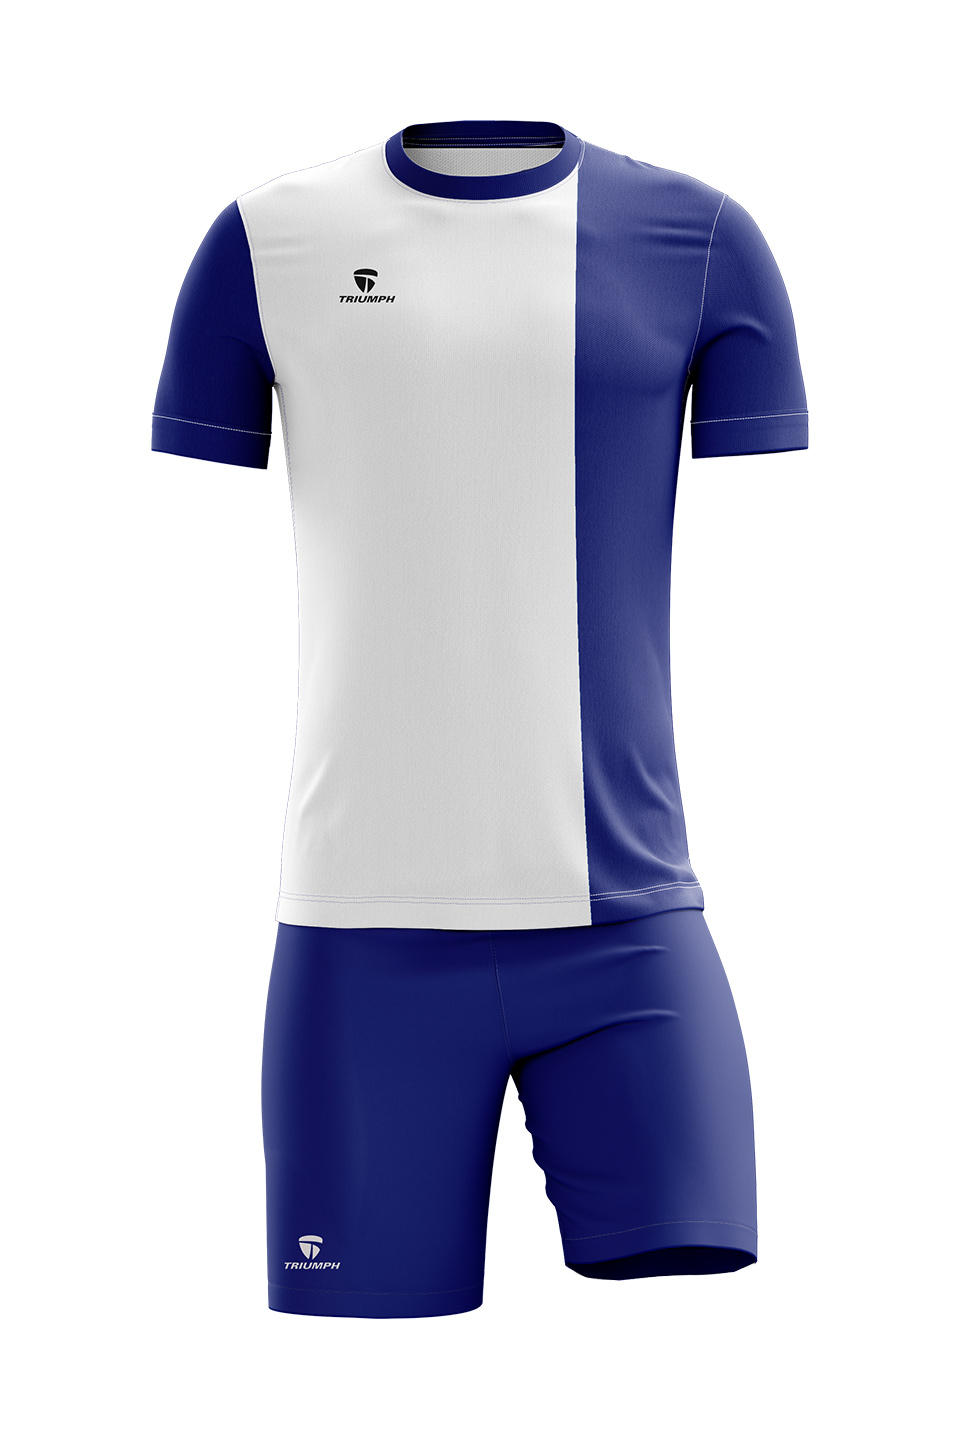 64a6db726 Customized soccer uniform ₹849.00